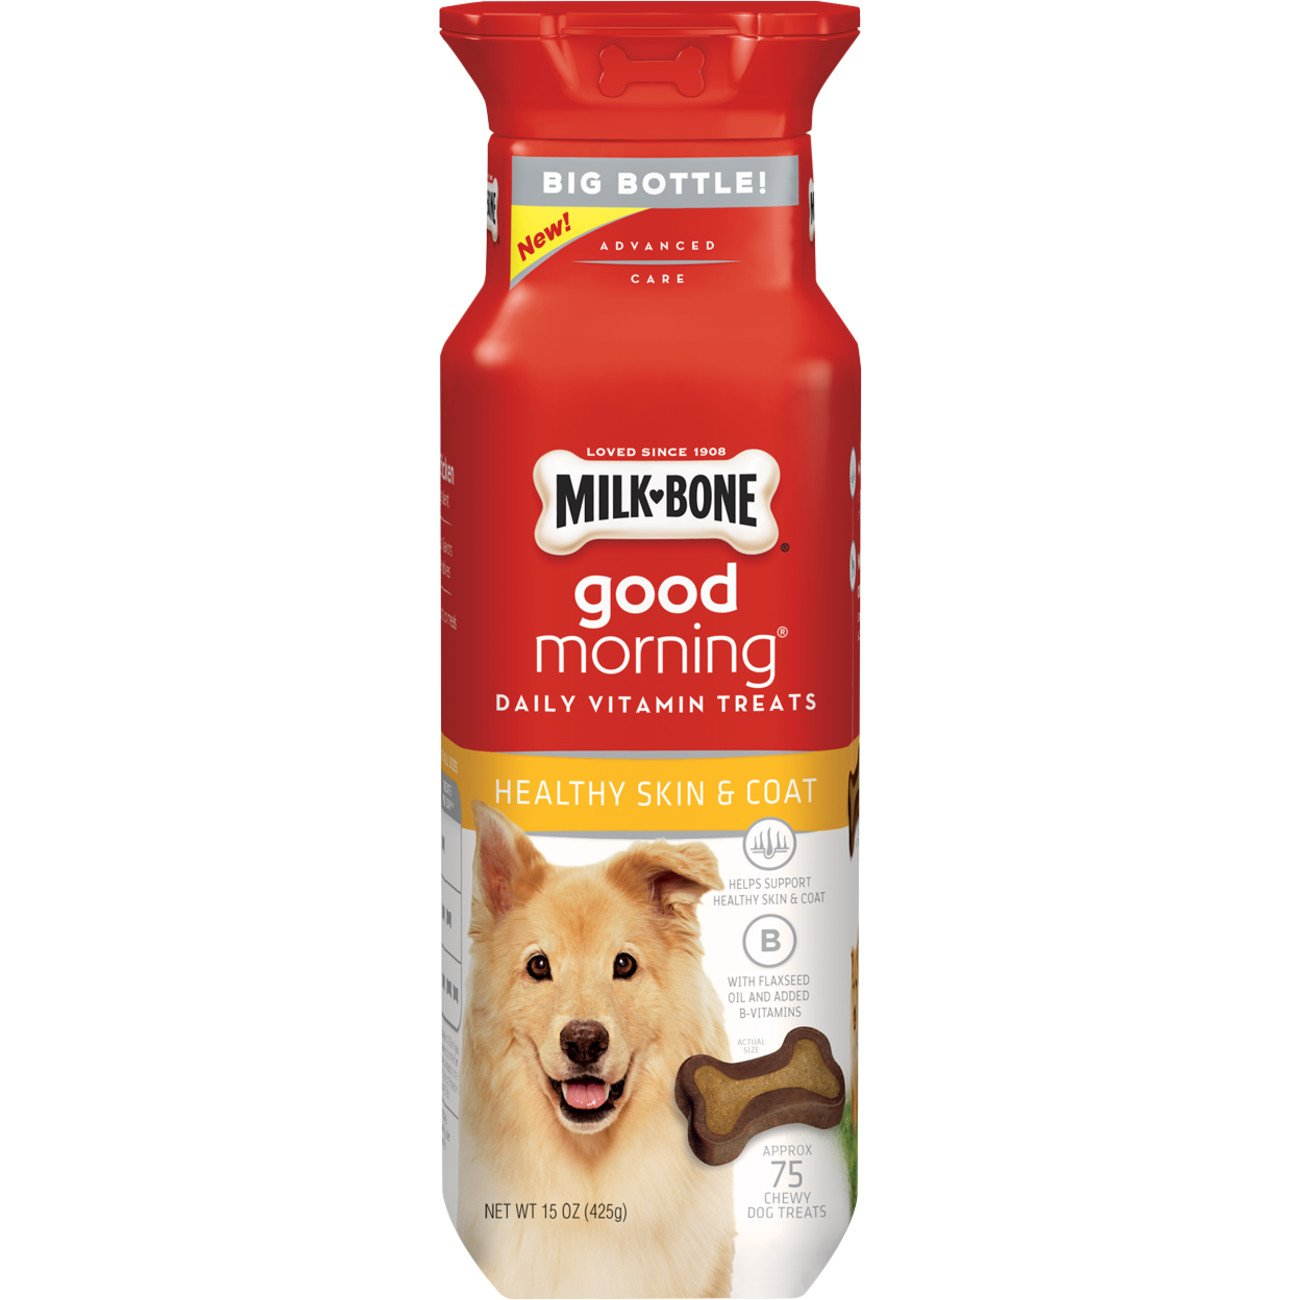 Milk-Bone Good Morning Daily Vitamin Dog Treats, 15 oz